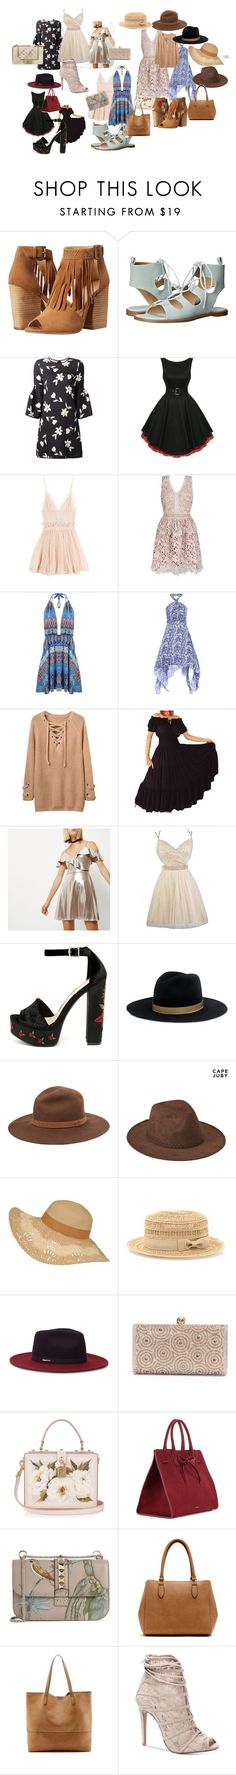 """Untitled #393"" by mommacarter ❤ liked on Polyvore featuring Chinese Laundry, Carolina Herrera, Alexander McQueen, River Island, Janessa Leone, rag & bone, Aéropostale, Bebe, Ted Baker and Dolce&Gabbana"